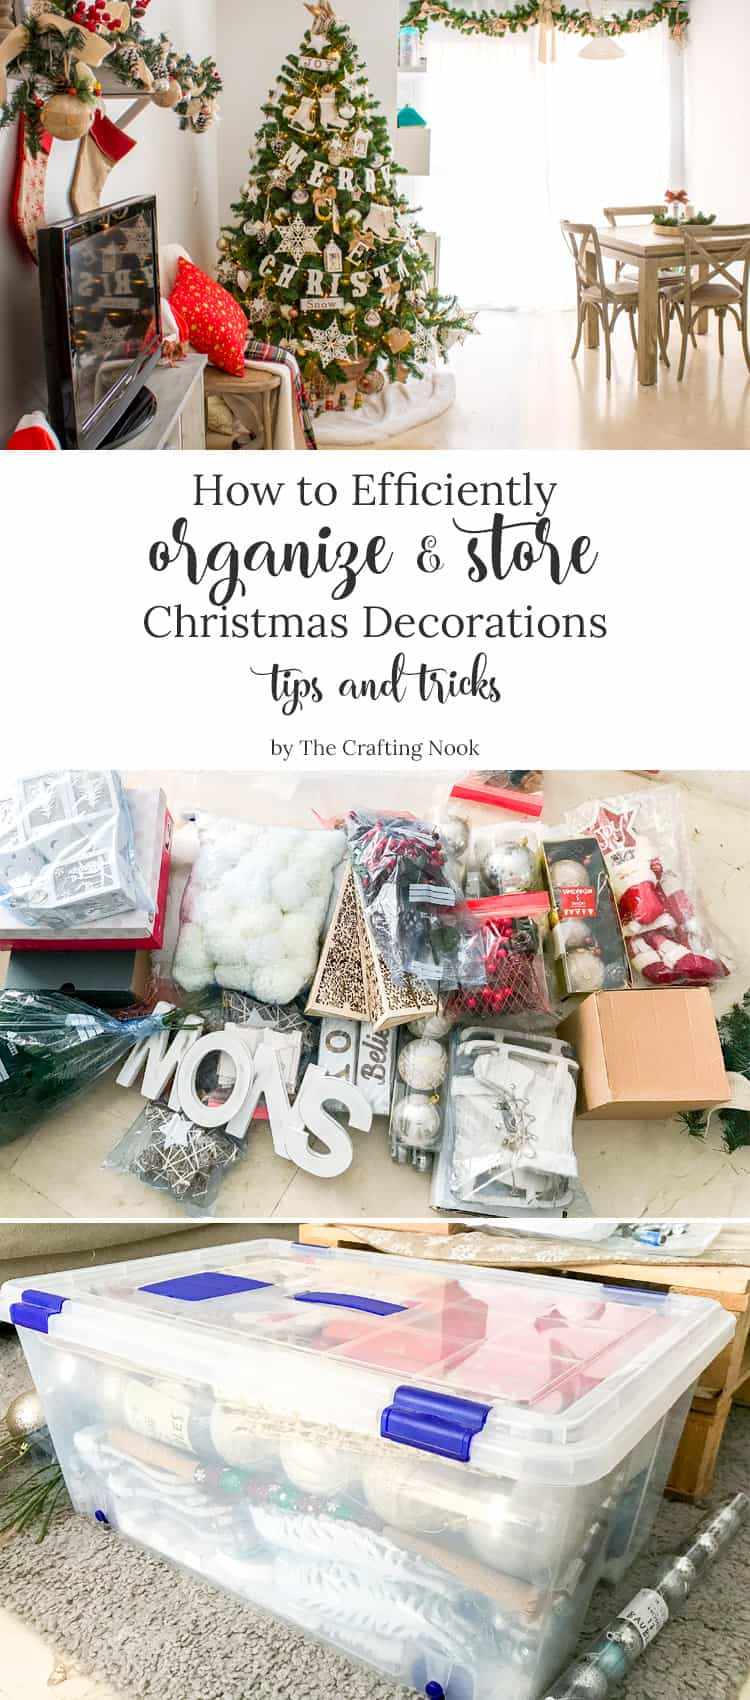 How to Efficiently Organize and Store Christmas Decorations